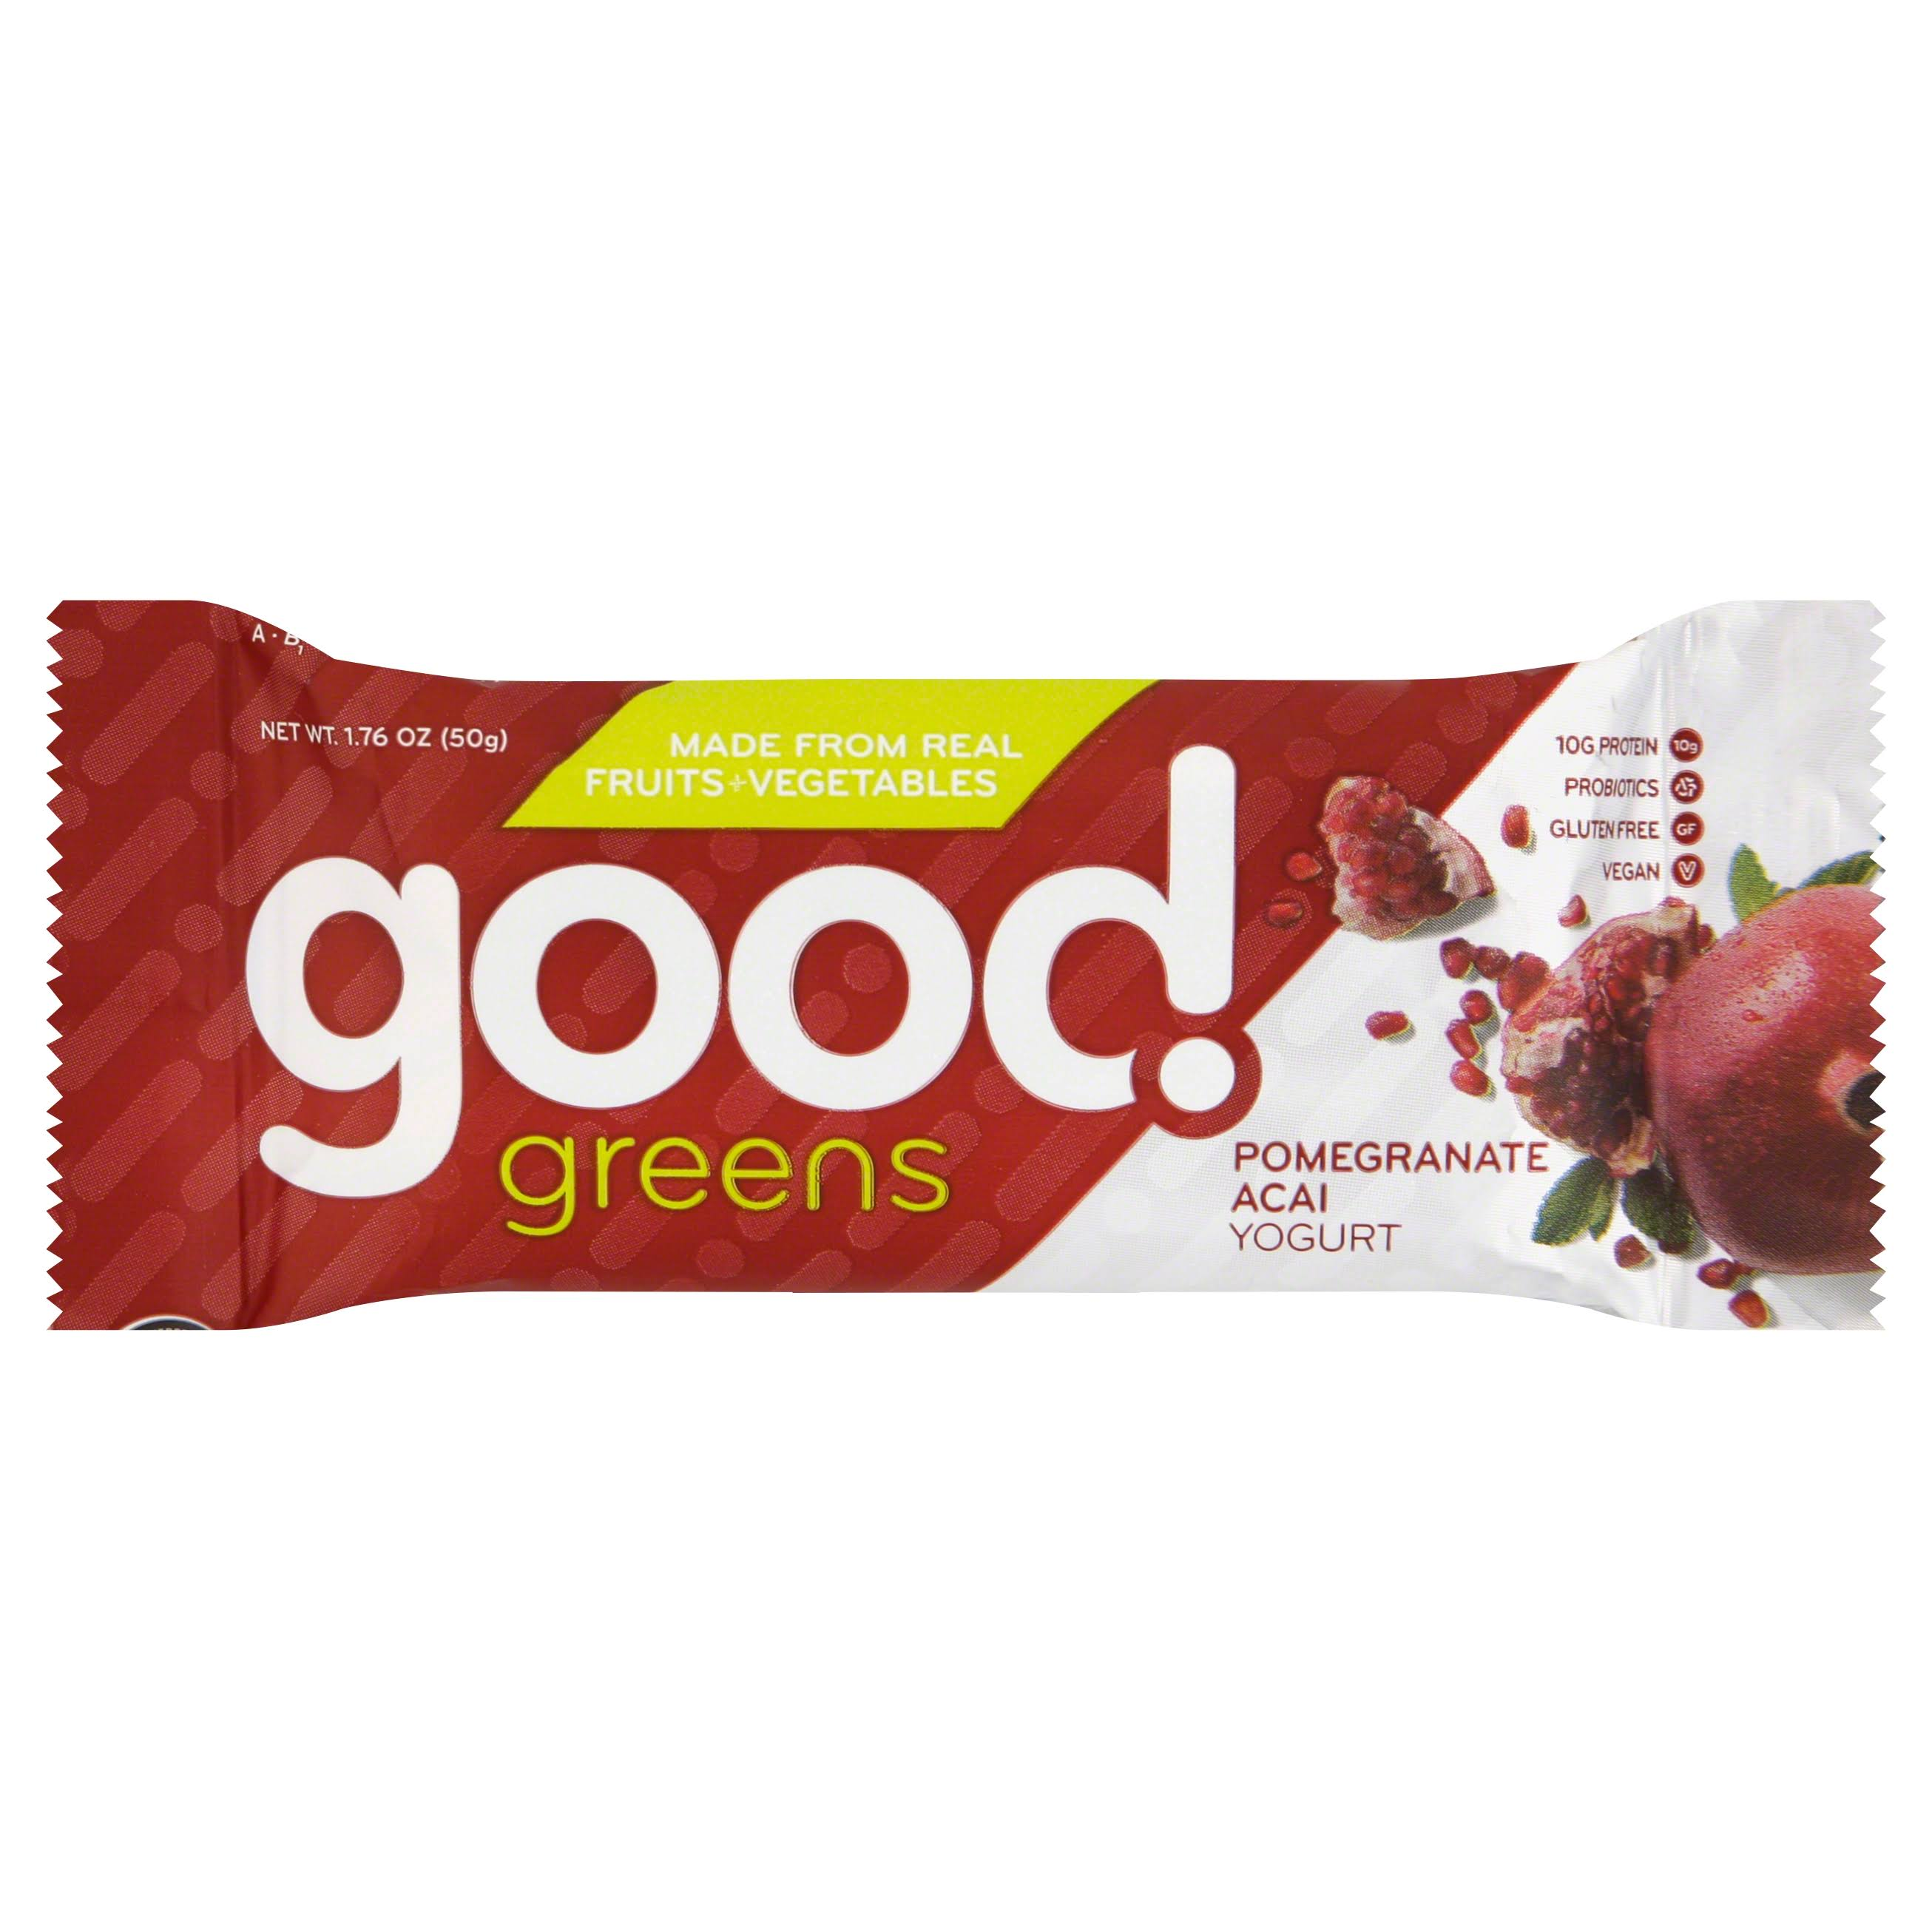 Good Greens Wellness Bar - Pomegranate Acai Yogurt, 1.76oz